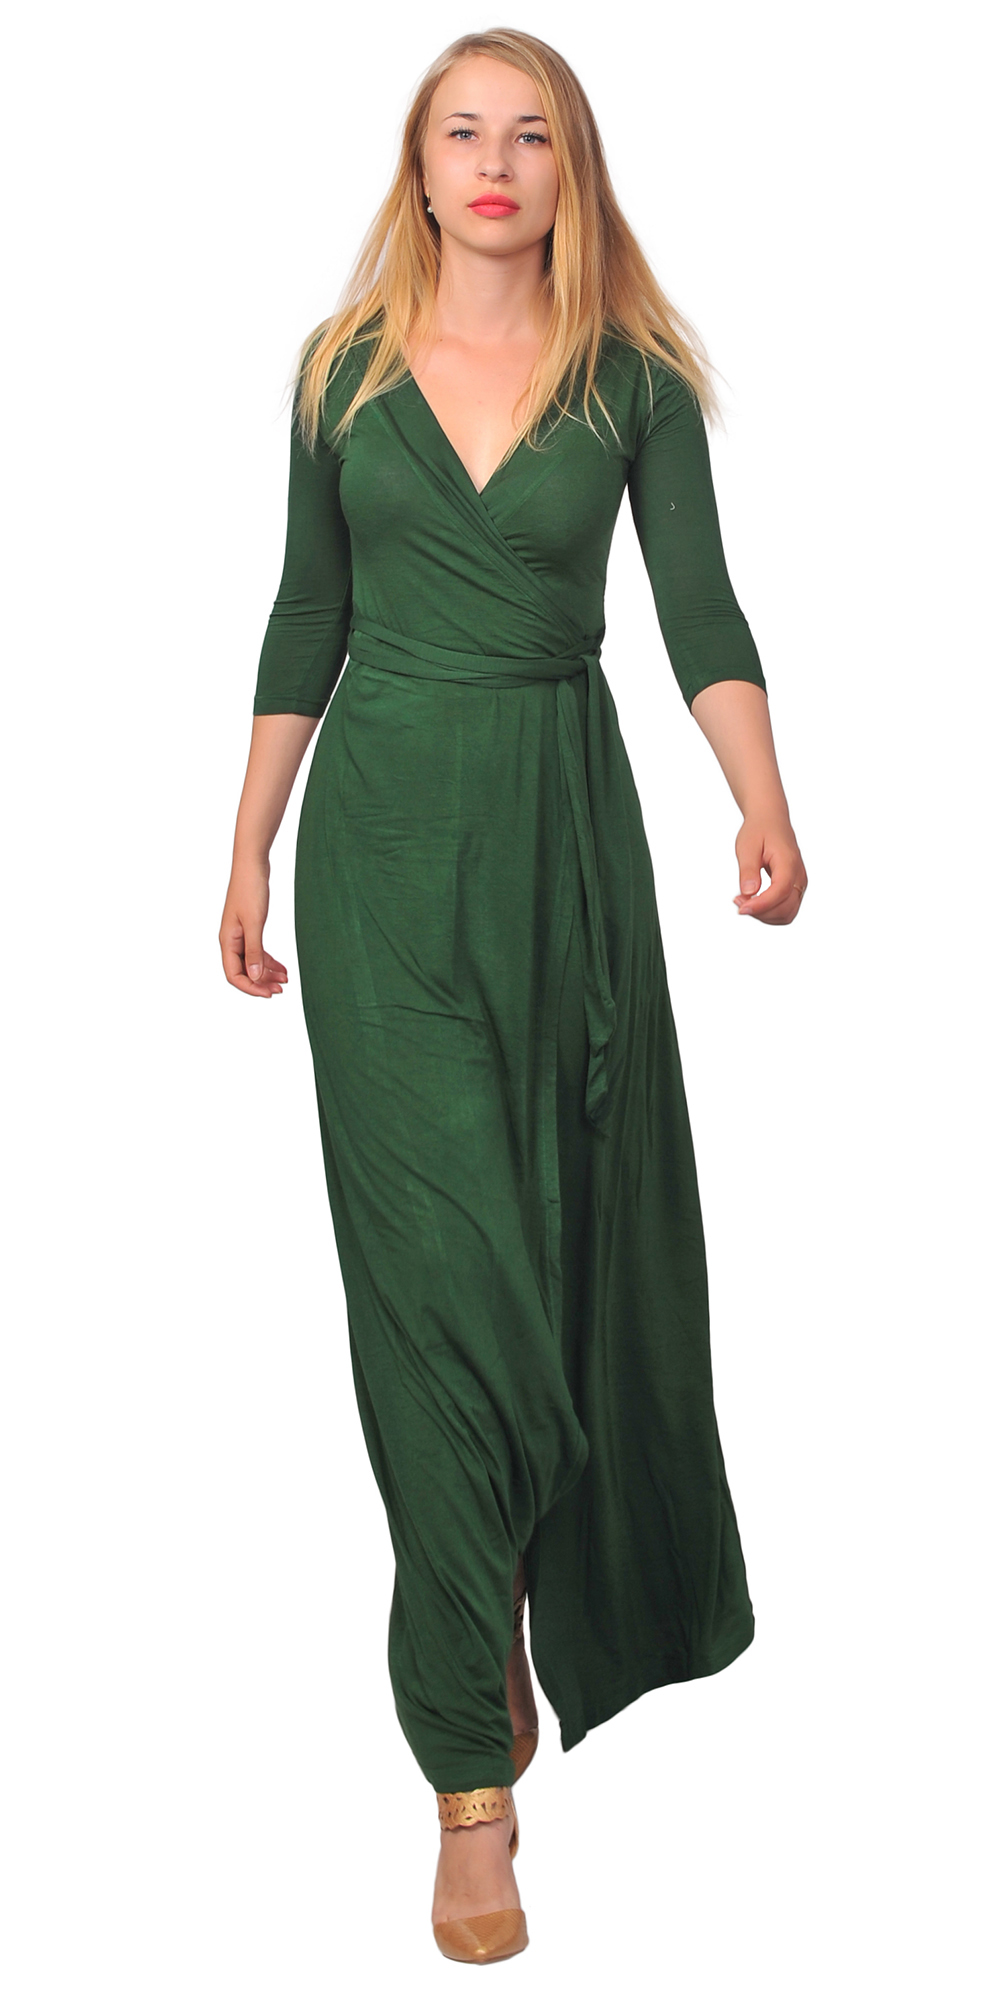 Gown or Long Dress - a woman's formal dress, usually having a floor-length skirt. [58] Maxi dresses (c) - maxi is a term used since the late s [59] for ankle-length, typically informal dresses.